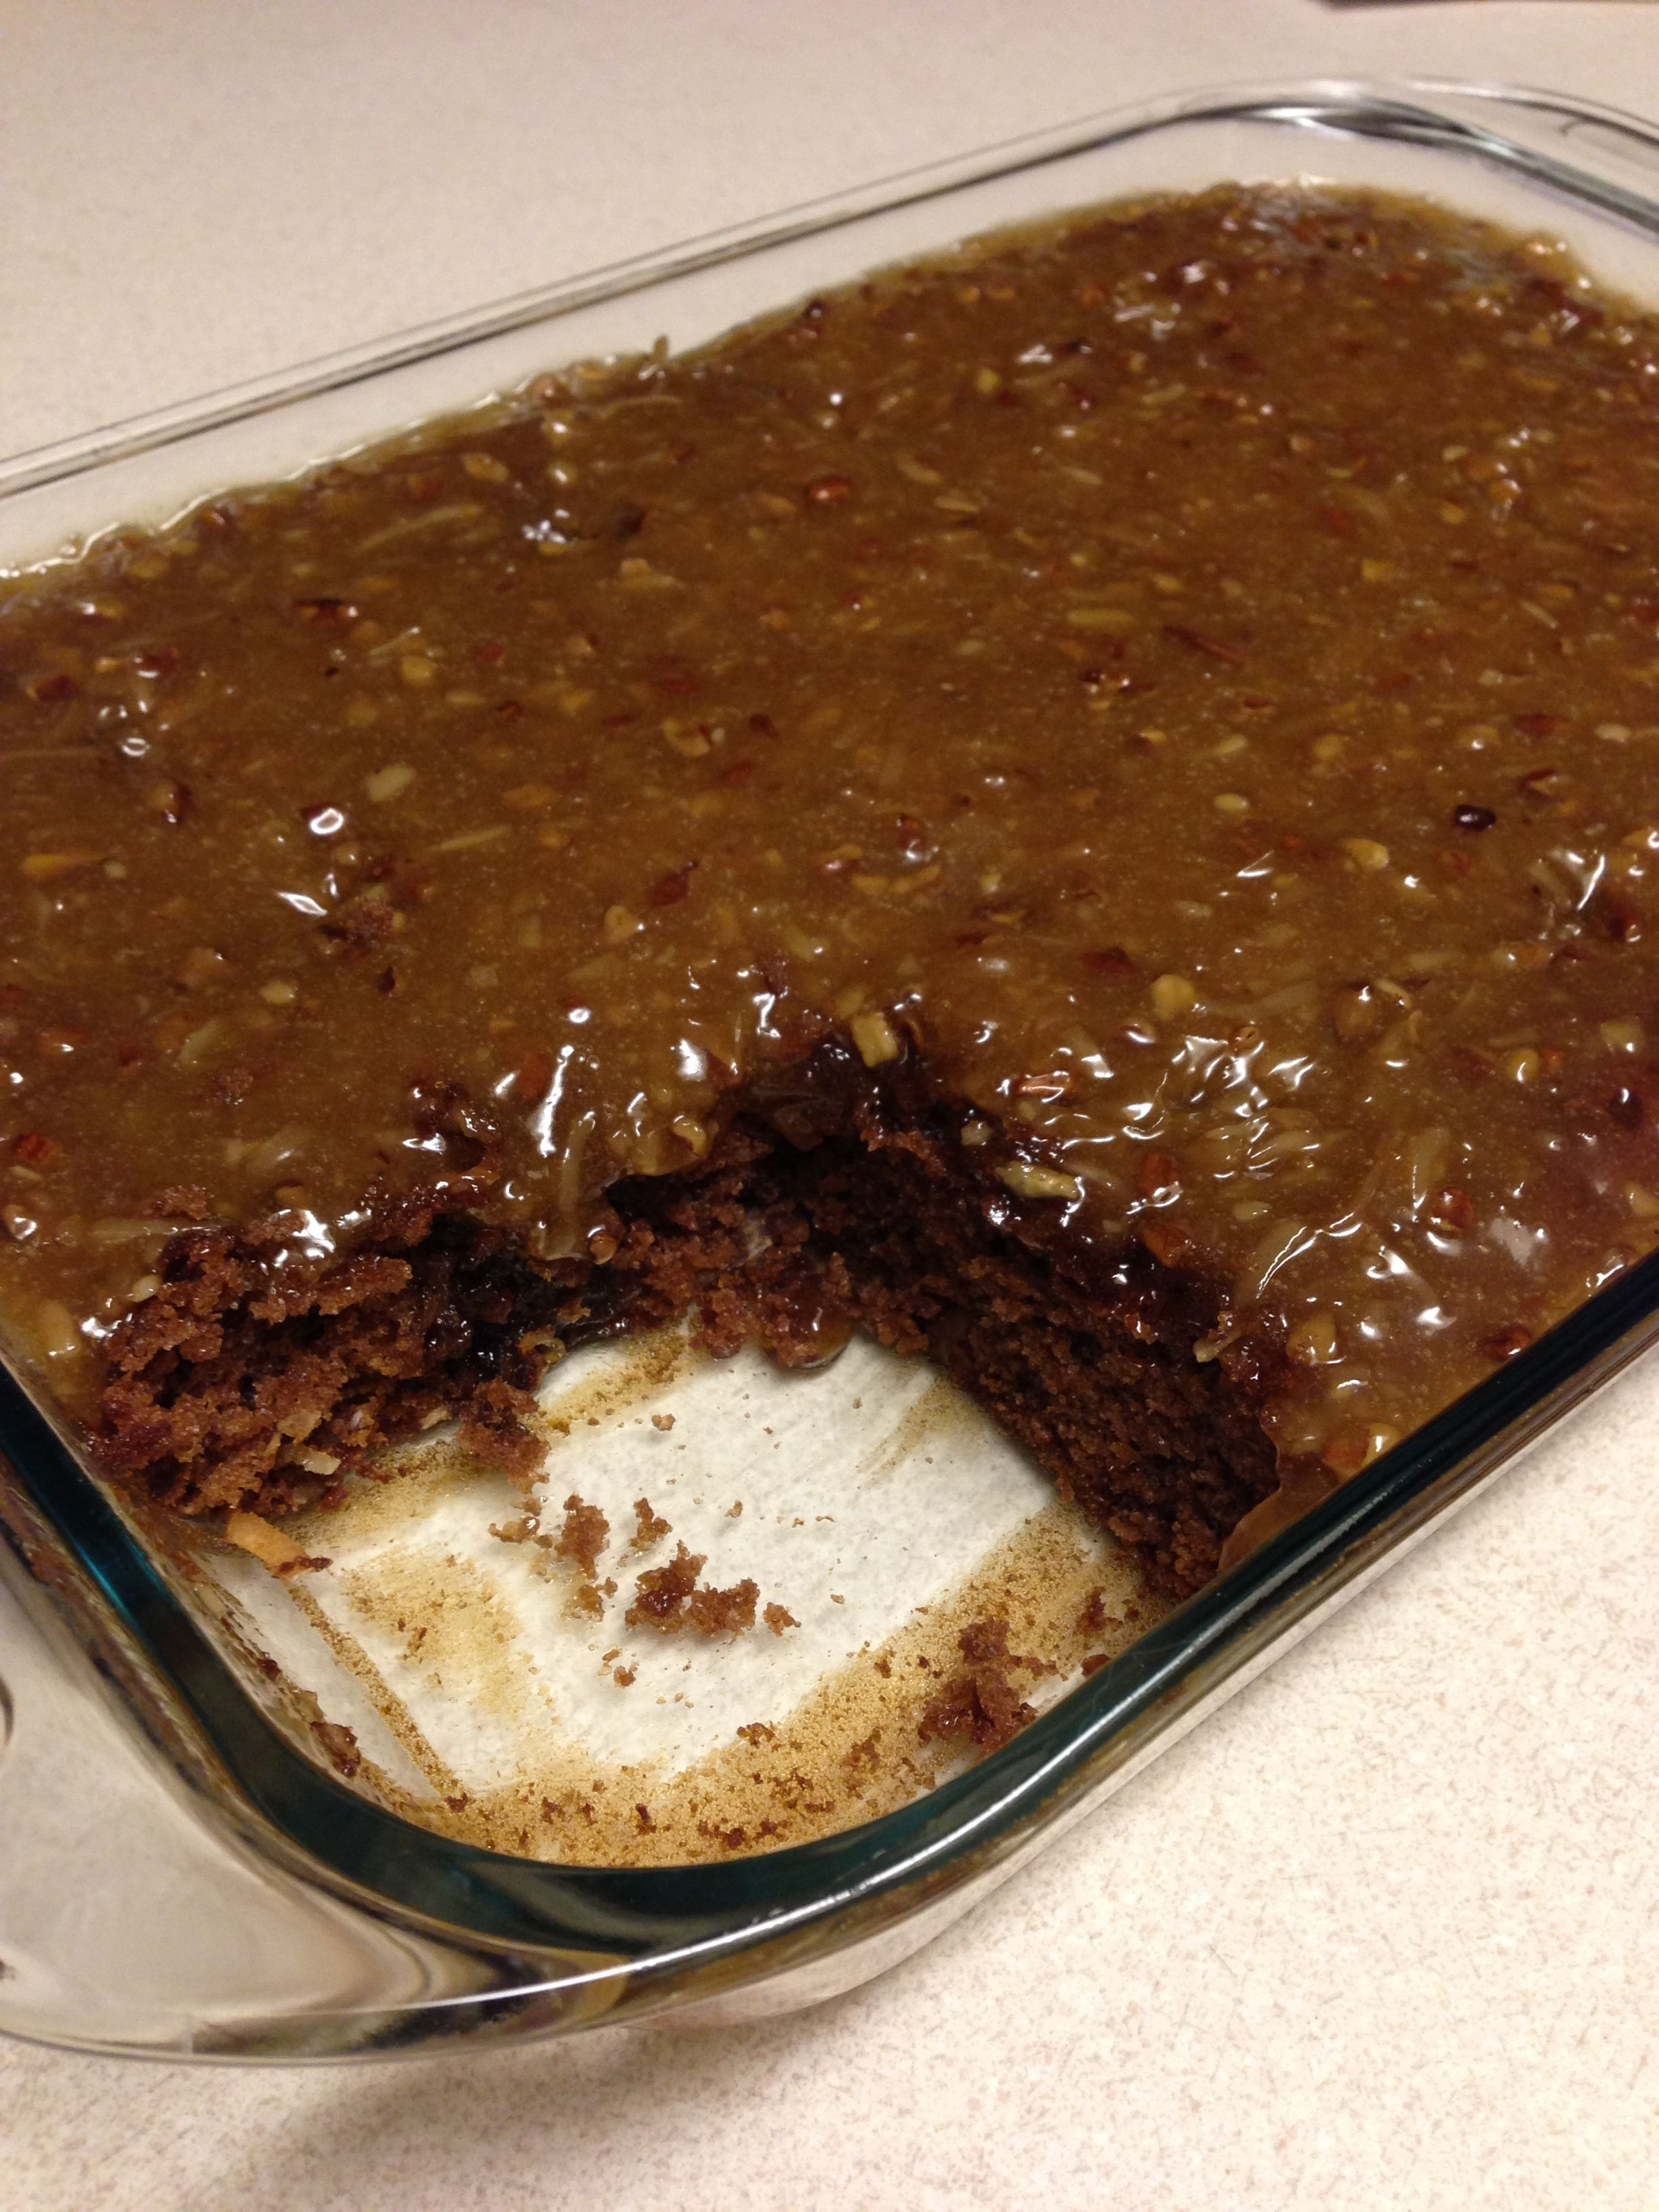 German Chocolate Cake Mix Together Duncan Hines Products 1 Box